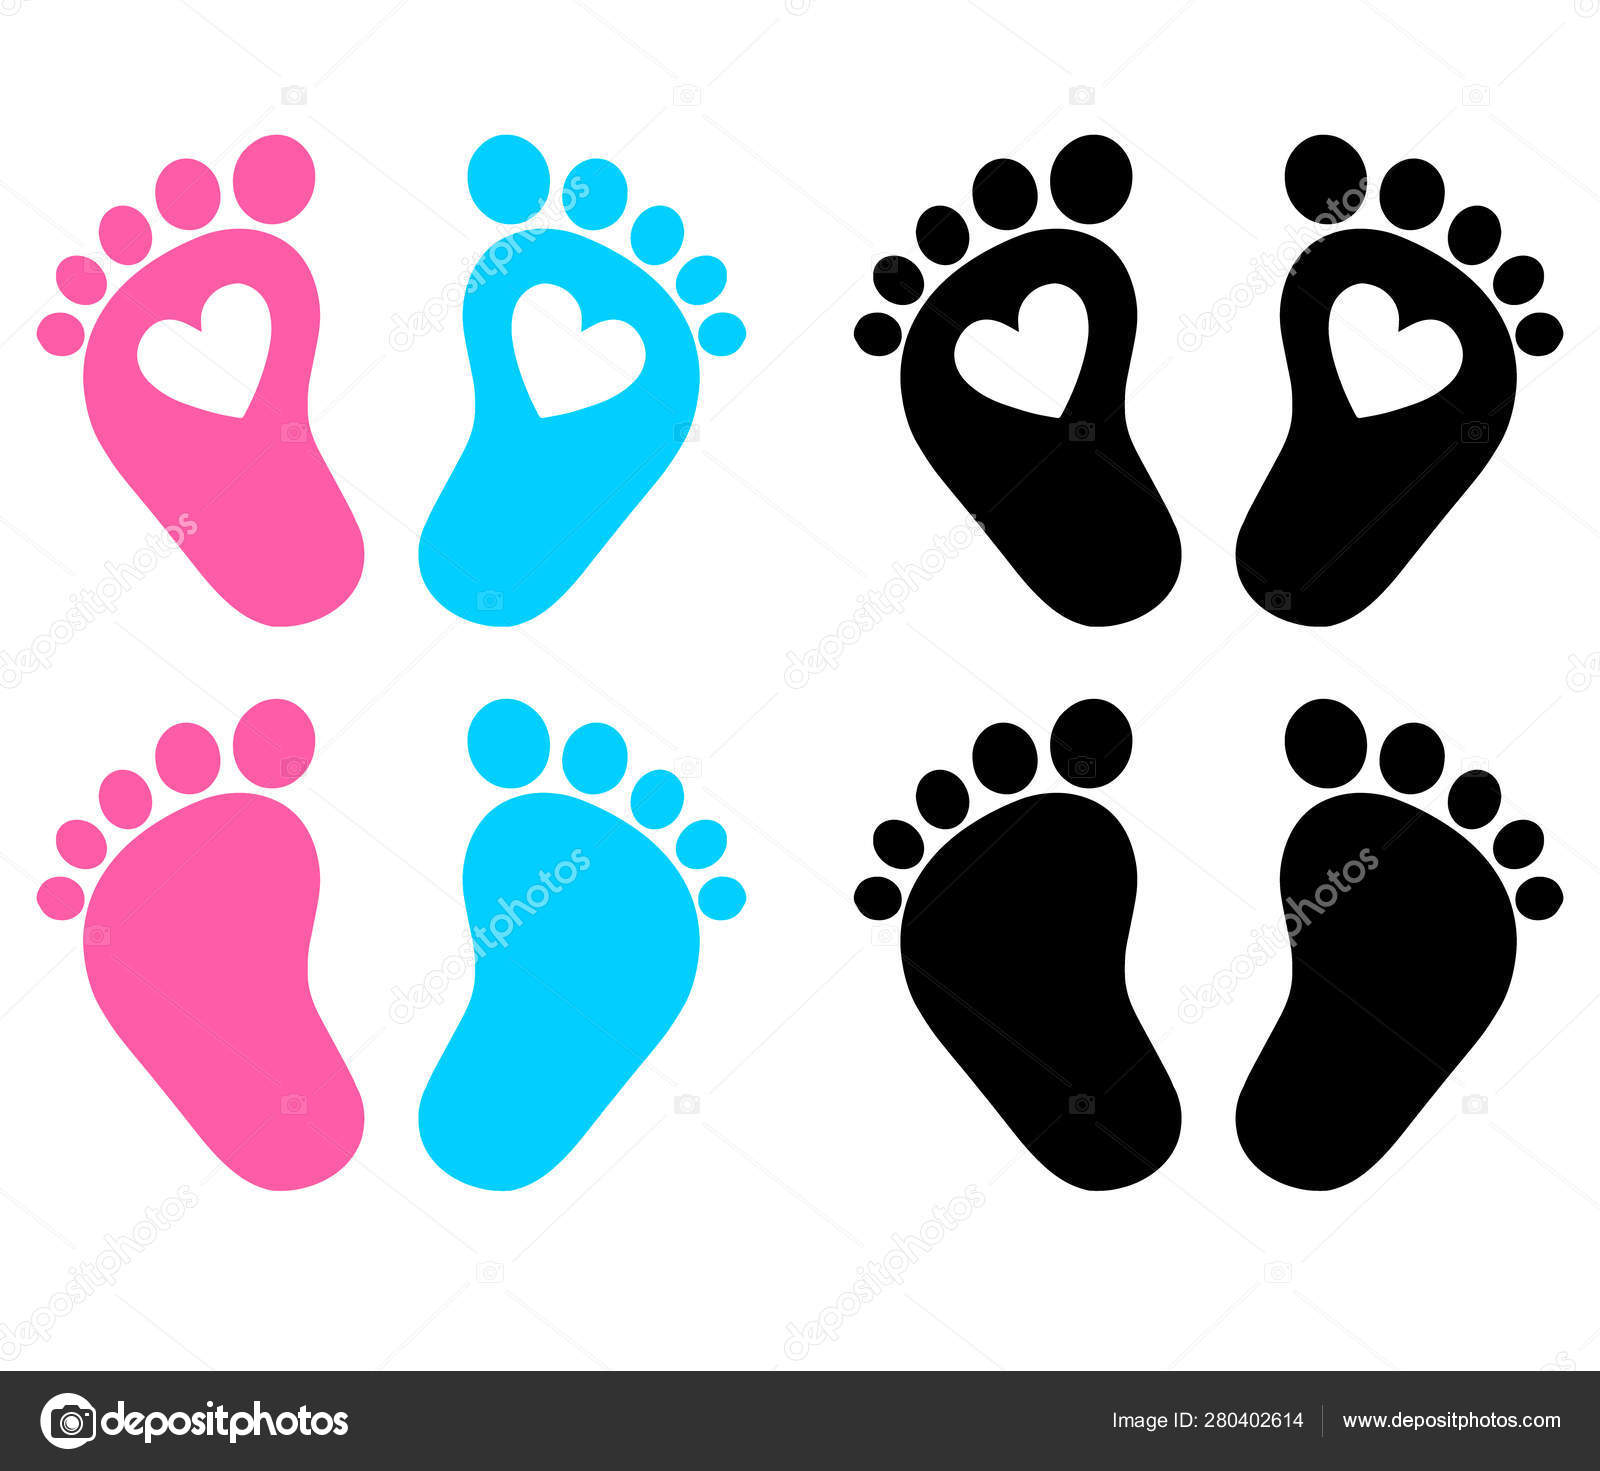 baby feet footprint hearts vector illustration stock vector c gleb261194 gmail com 280402614 baby feet footprint hearts vector illustration stock vector c gleb261194 gmail com 280402614